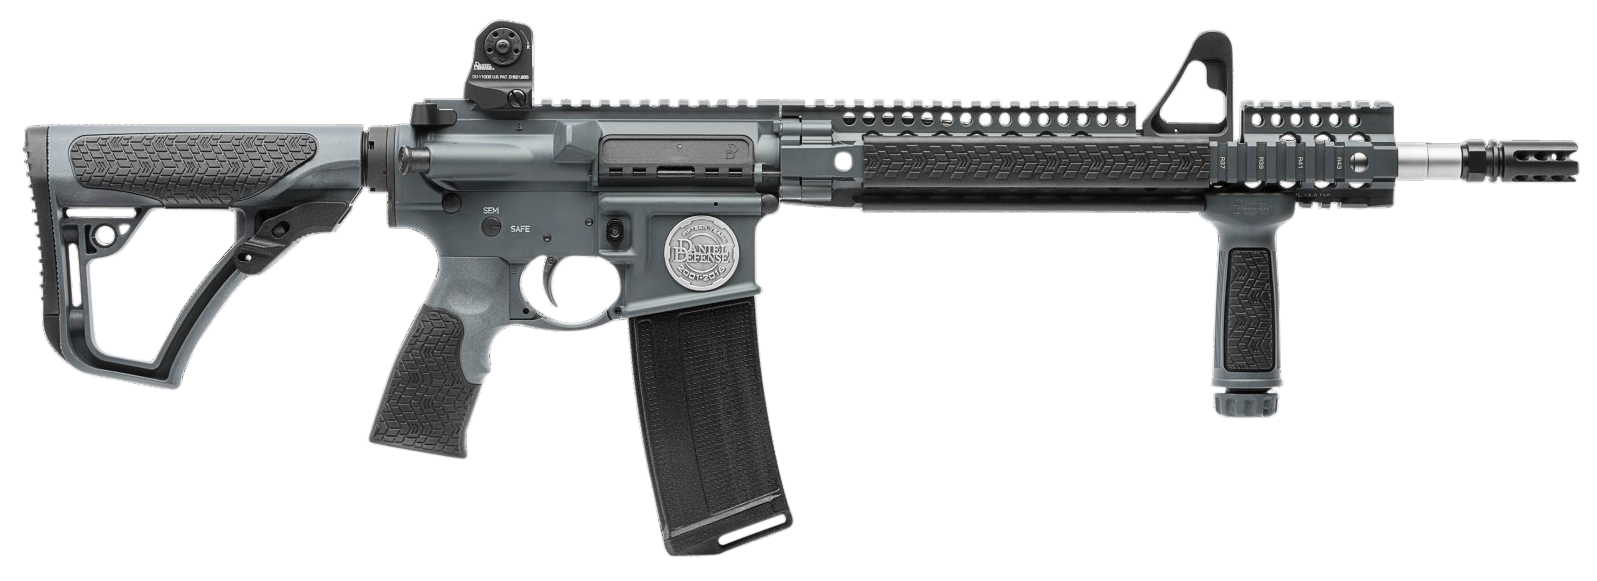 Daniel Defense  DDM4 V1 15th Anniversary Semi-Automatic 223 Remington/5.56 NATO 14.5